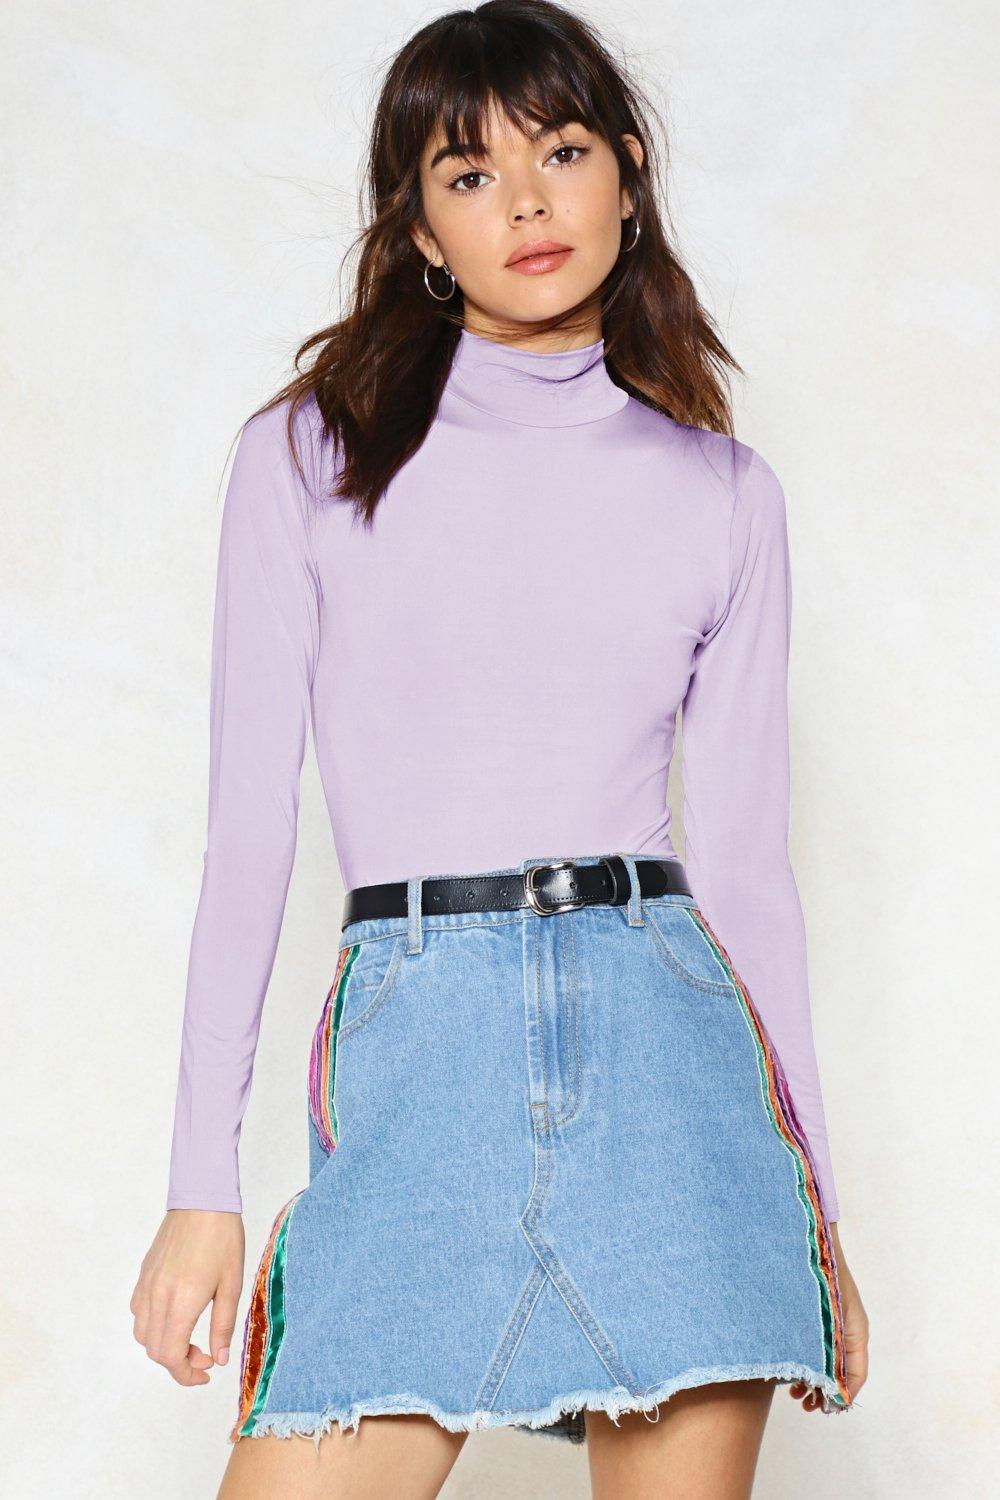 fbc15f608 Up to My Neck Turtleneck Top | Shop Clothes at Nasty Gal!